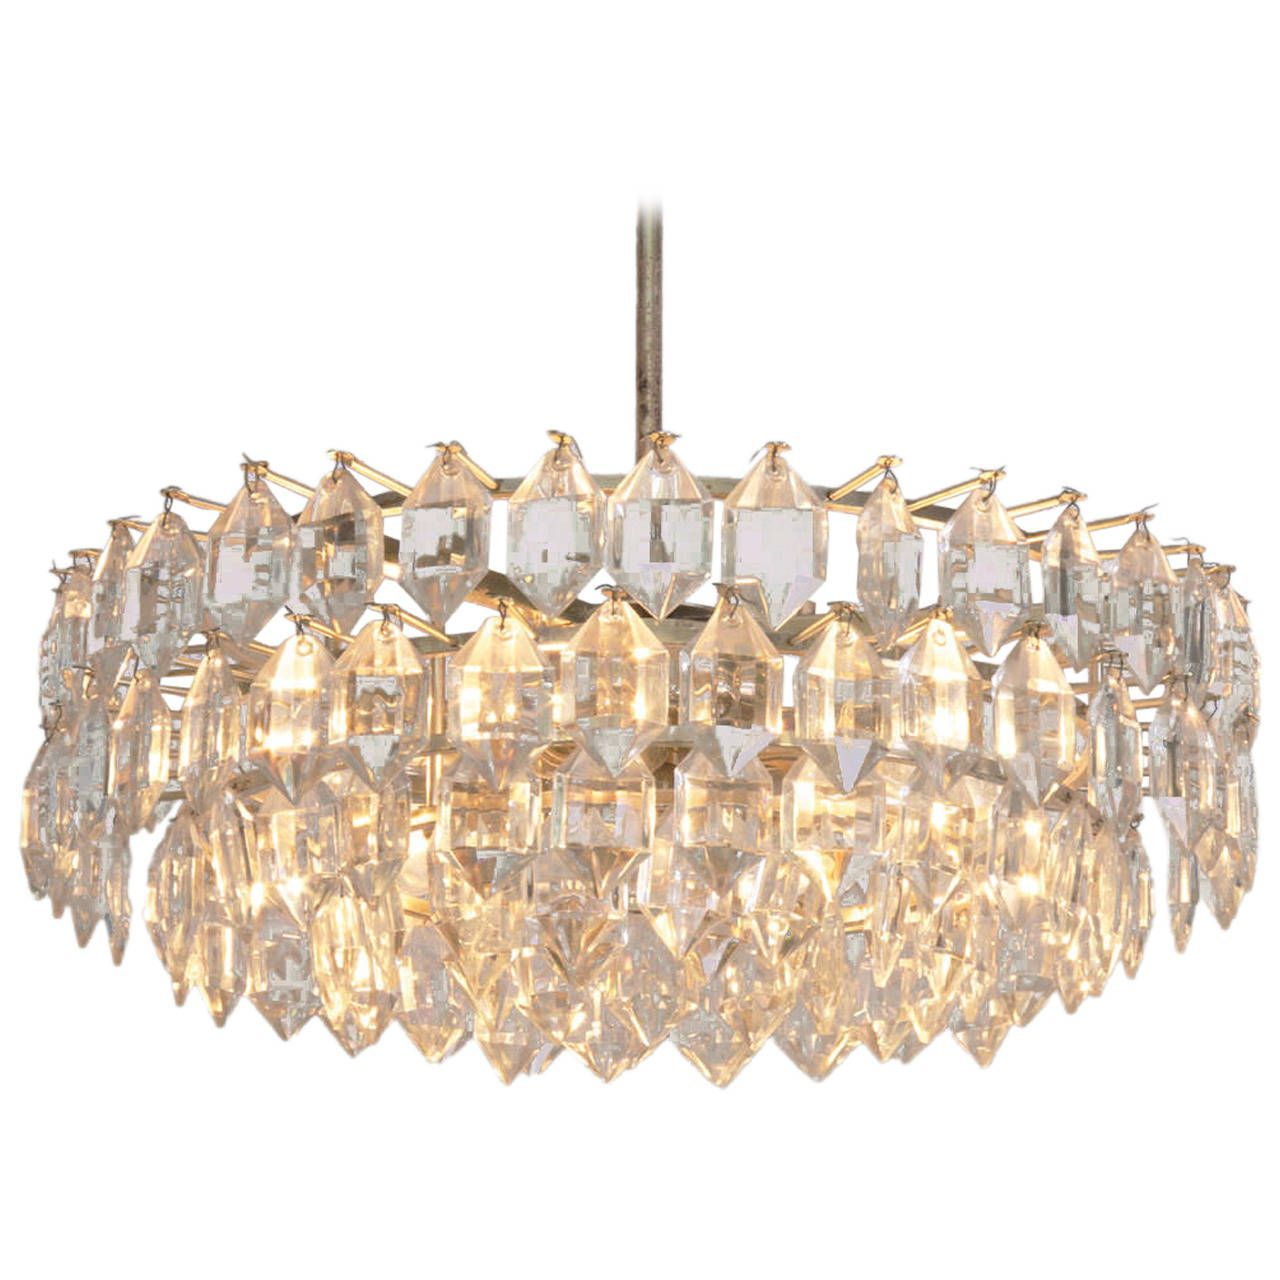 large crystal chandelier table top centerpieces for.htm                                                               17379546602              qq